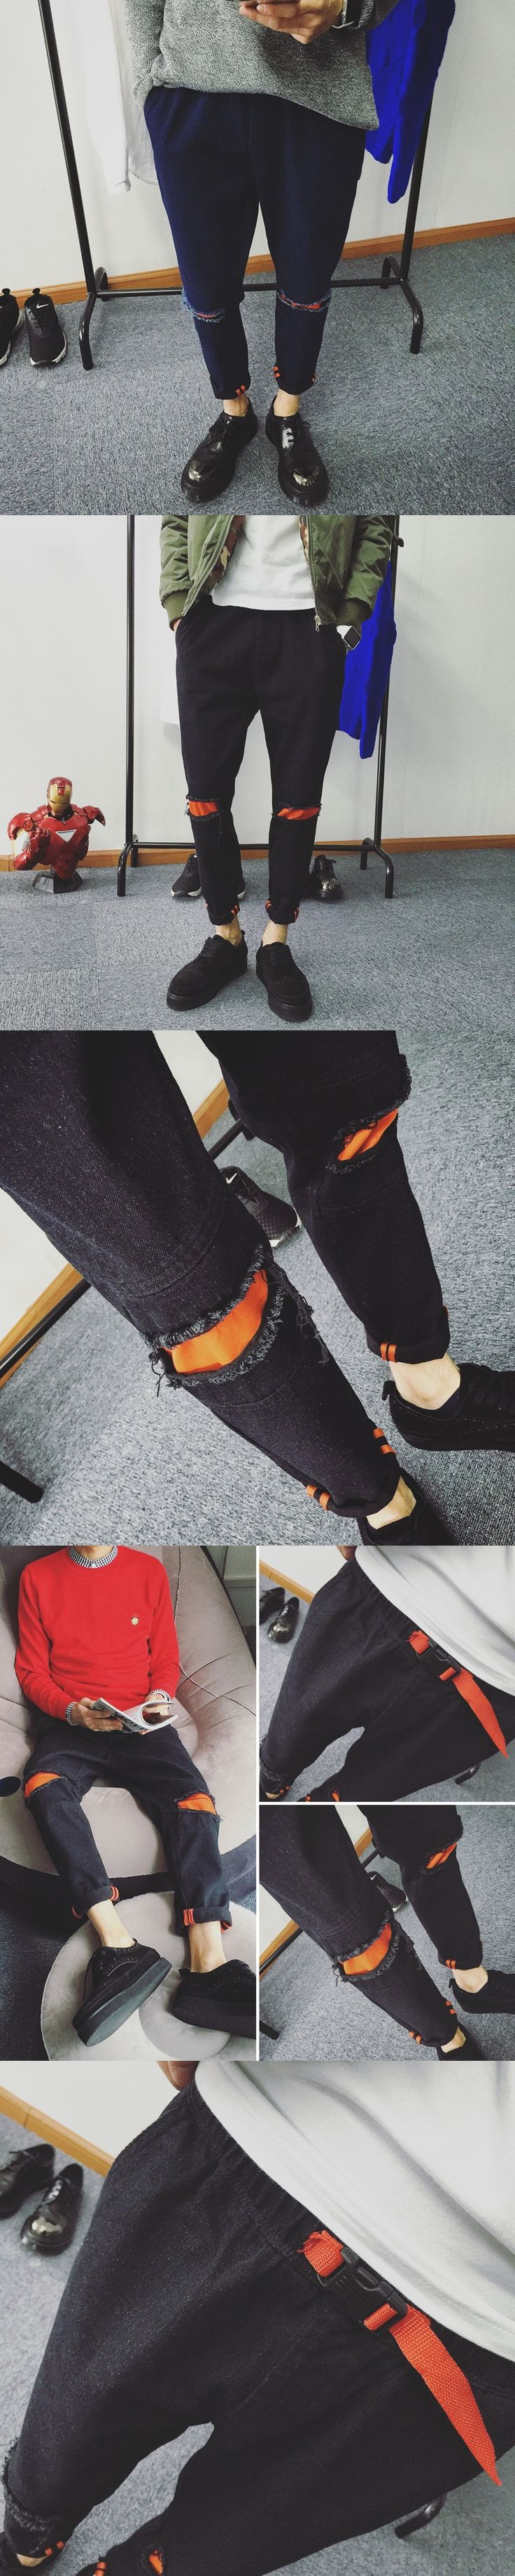 Fashion 2017 Spring Summer Striped Patchwork Street City Casual Ripped Hole knee male Teenager Hip hop jeans Men Pancil Pants